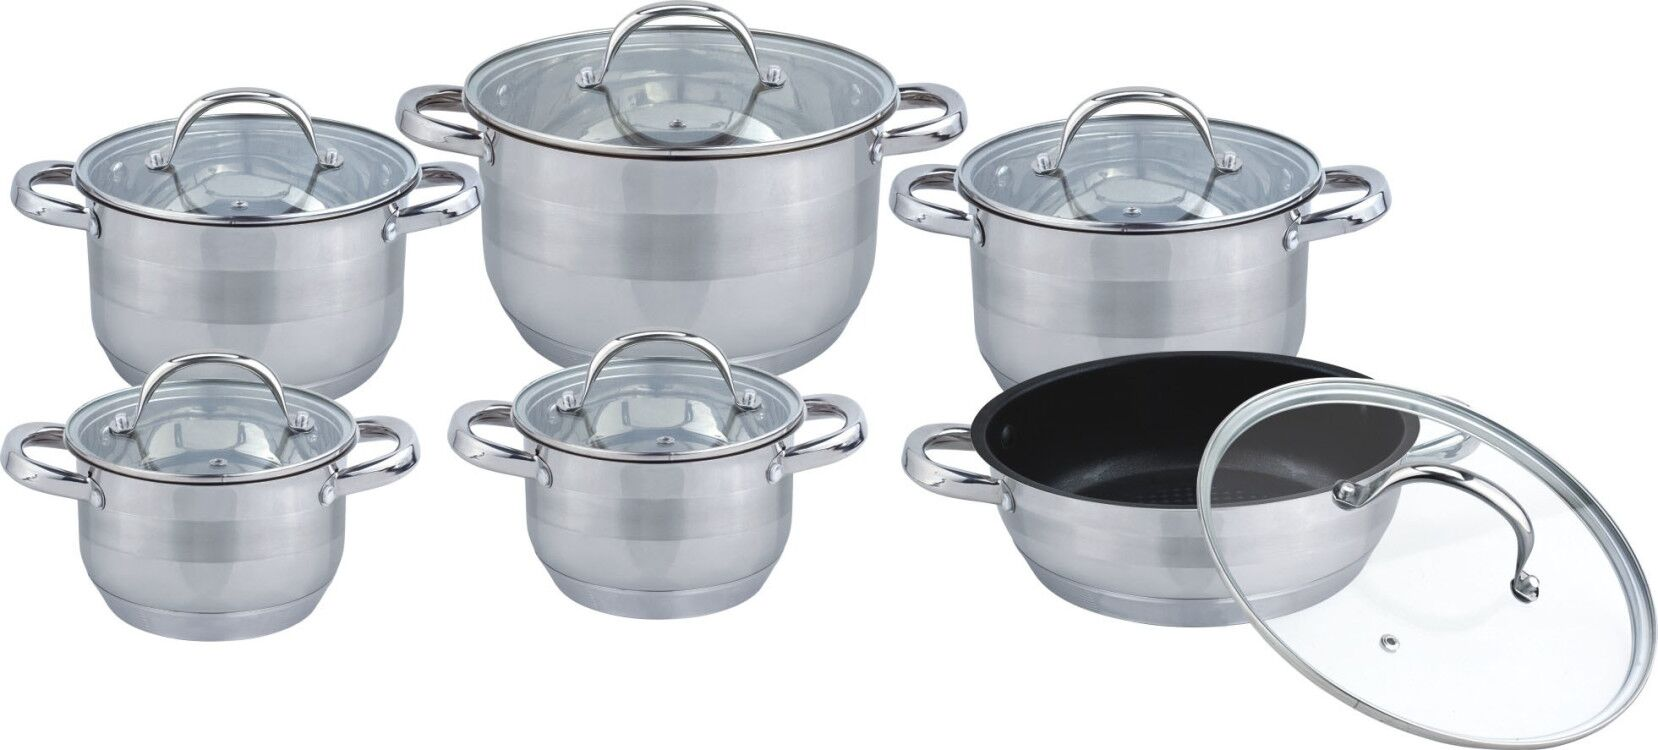 Straigt shape cookware set